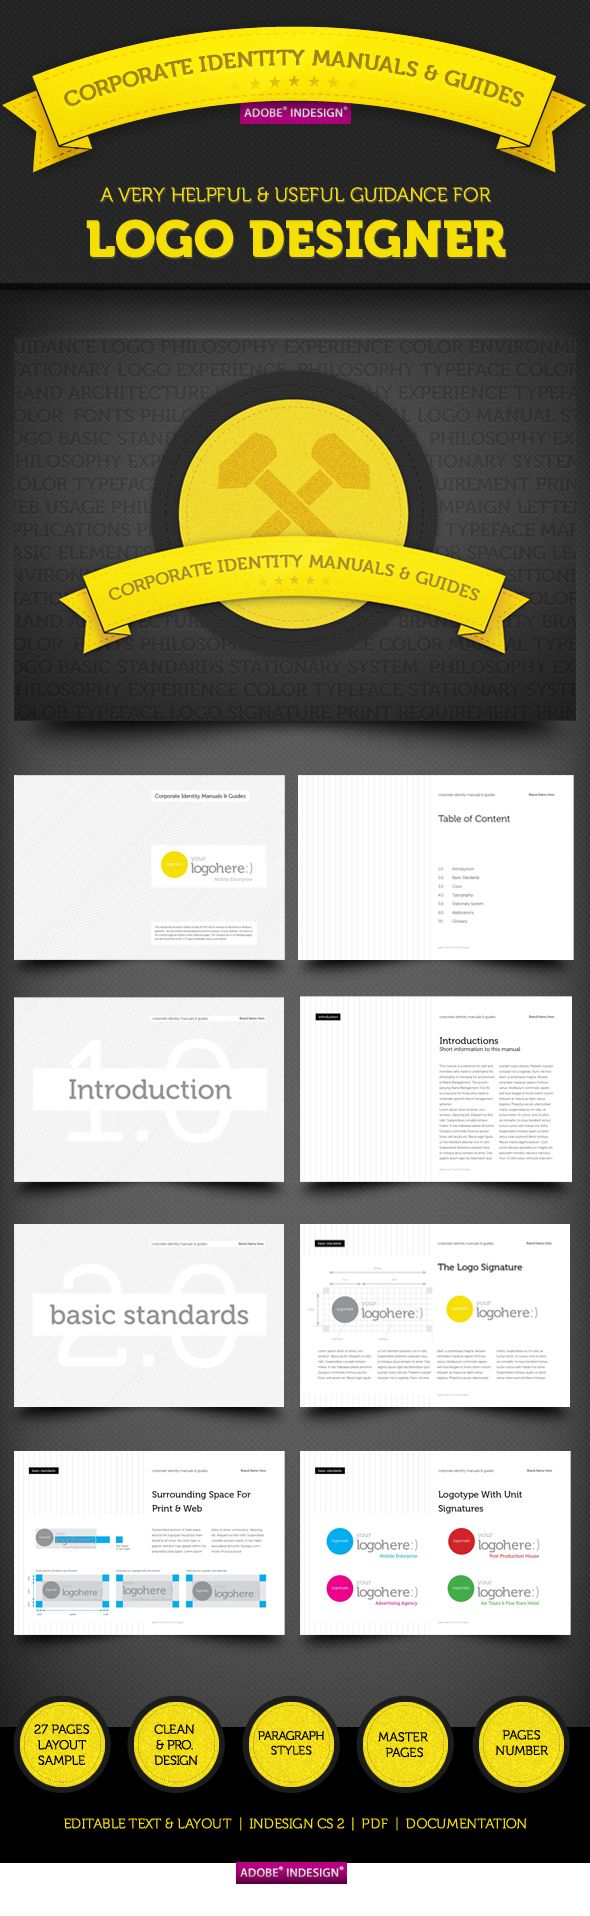 46 best Branding Style Guide images on Pinterest | Brand manual ...